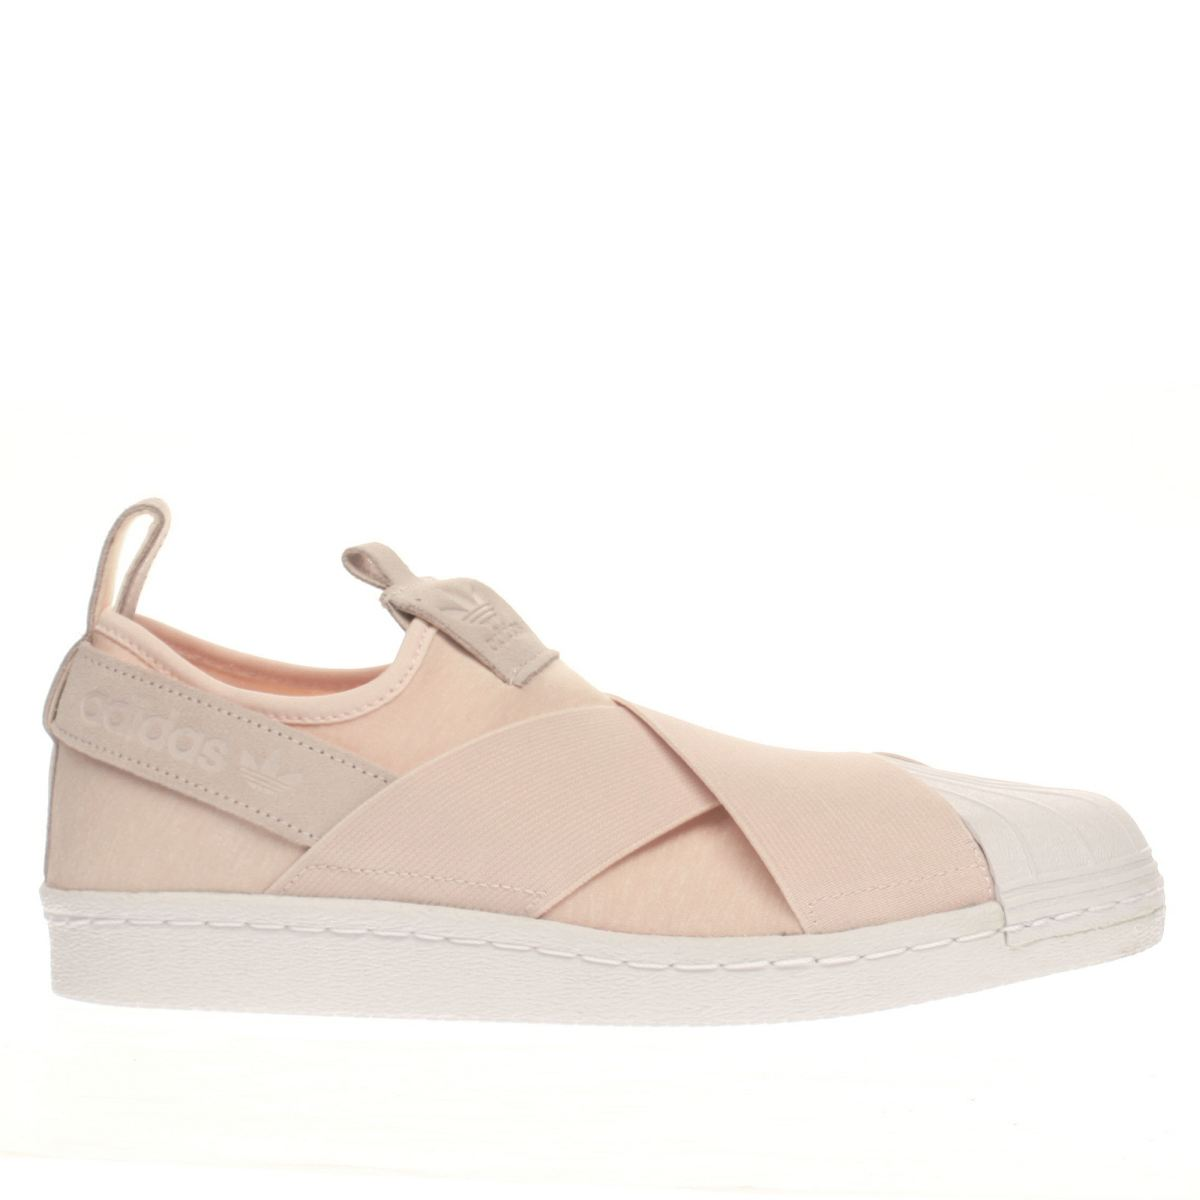 Adidas Superstar Slip On Peach